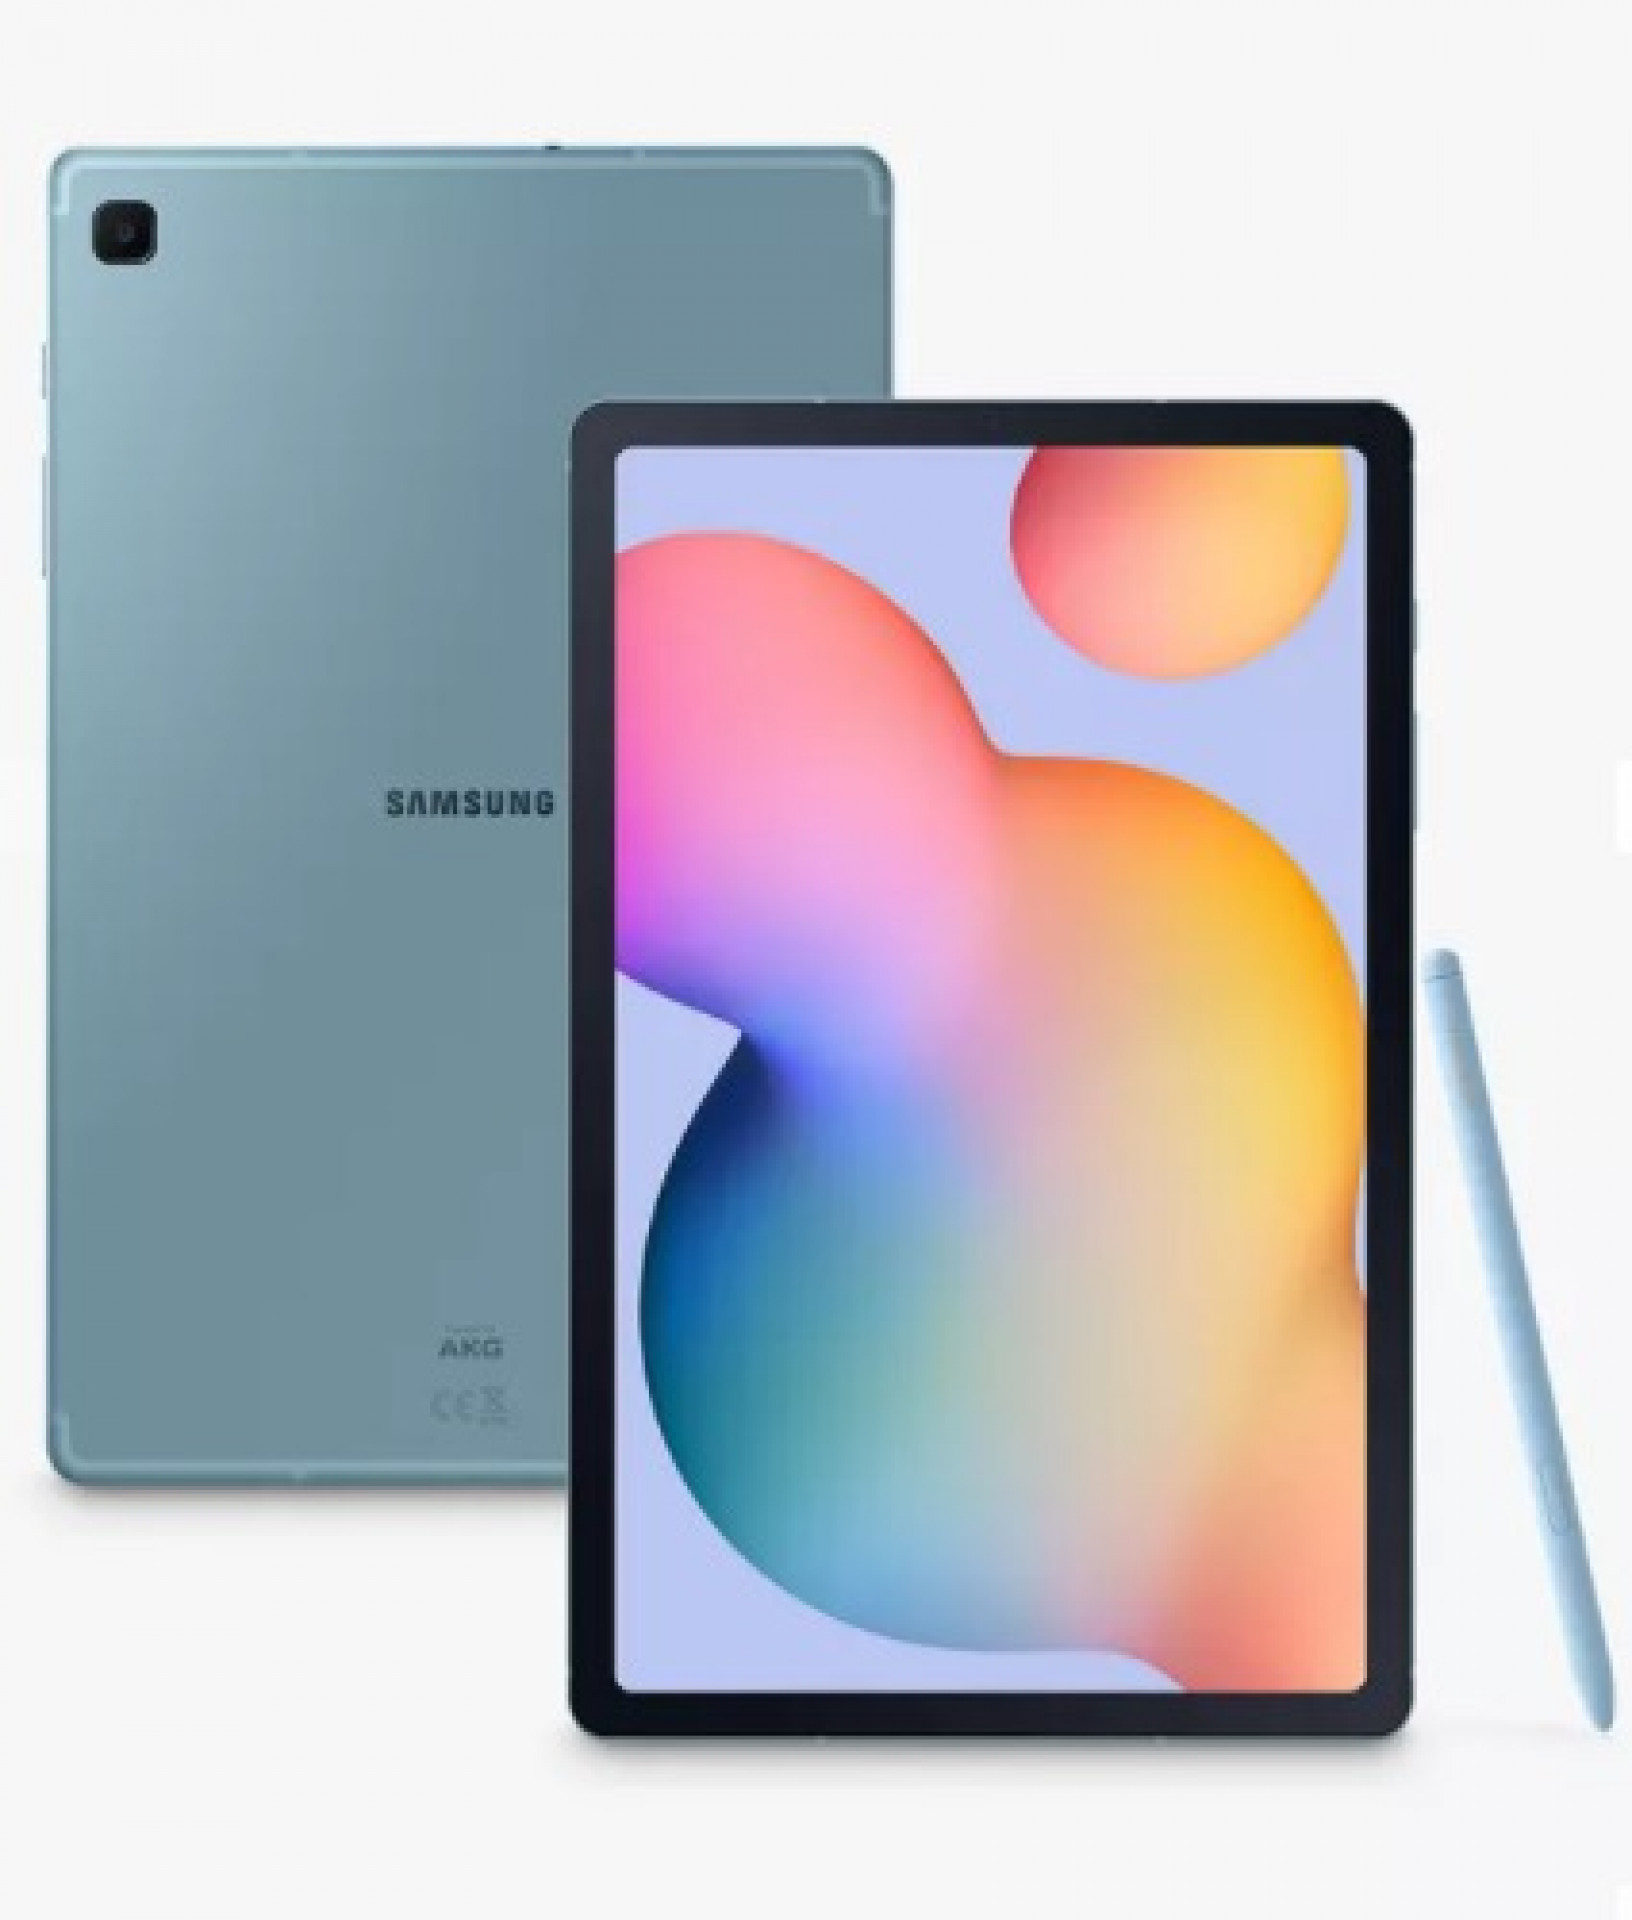 "Samsung Galaxy Tab S6 Lite Tablet with S Pen, Android, 64GB, 4GB RAM, LTE, 10.4"", Angora Blue"